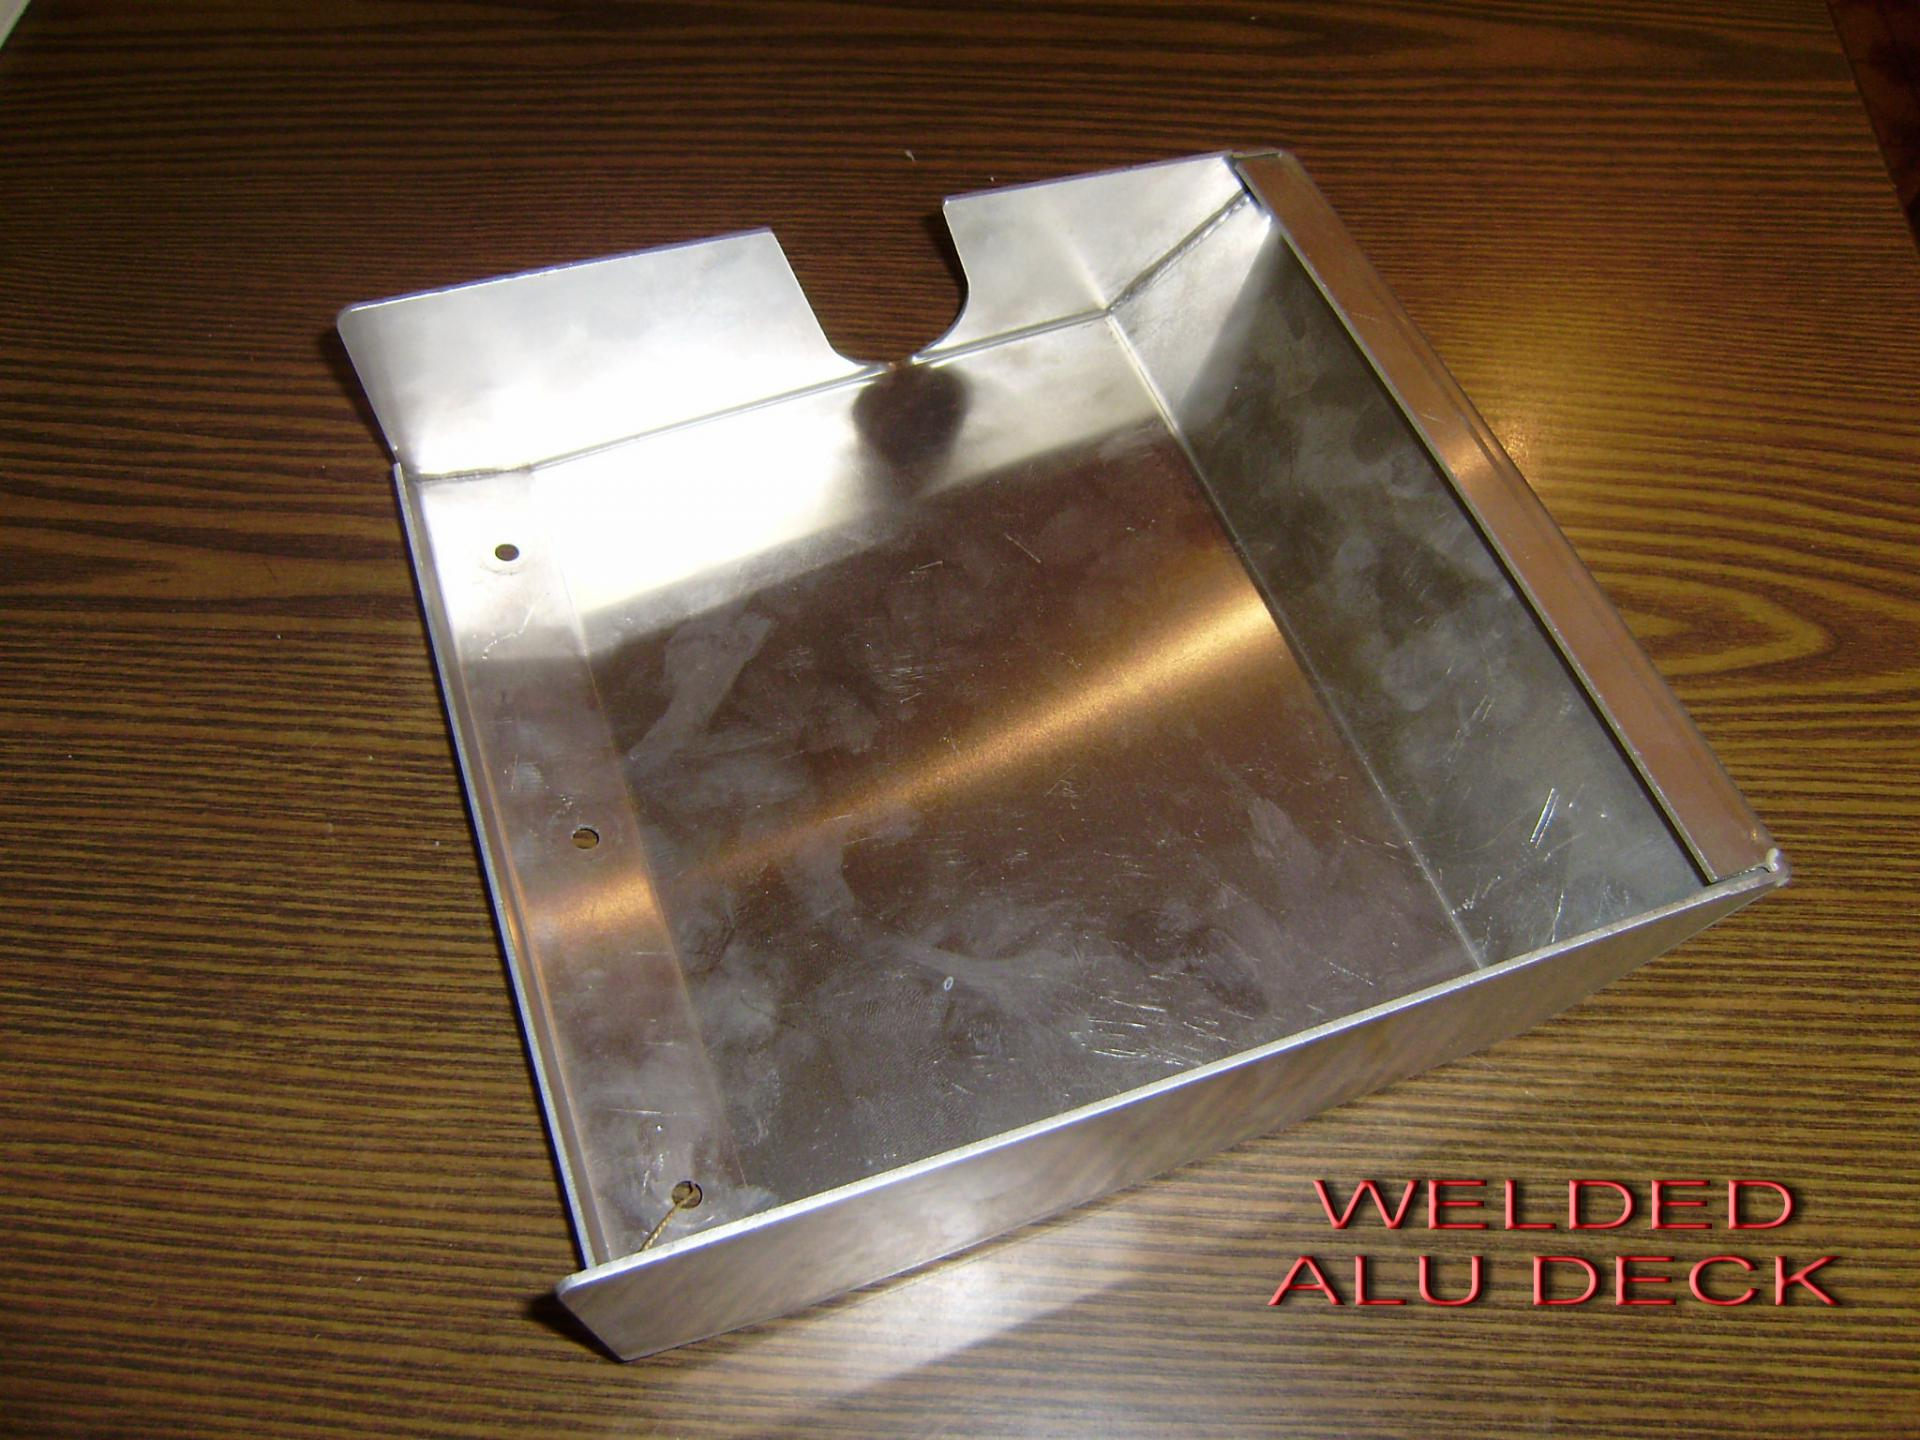 Welded alu